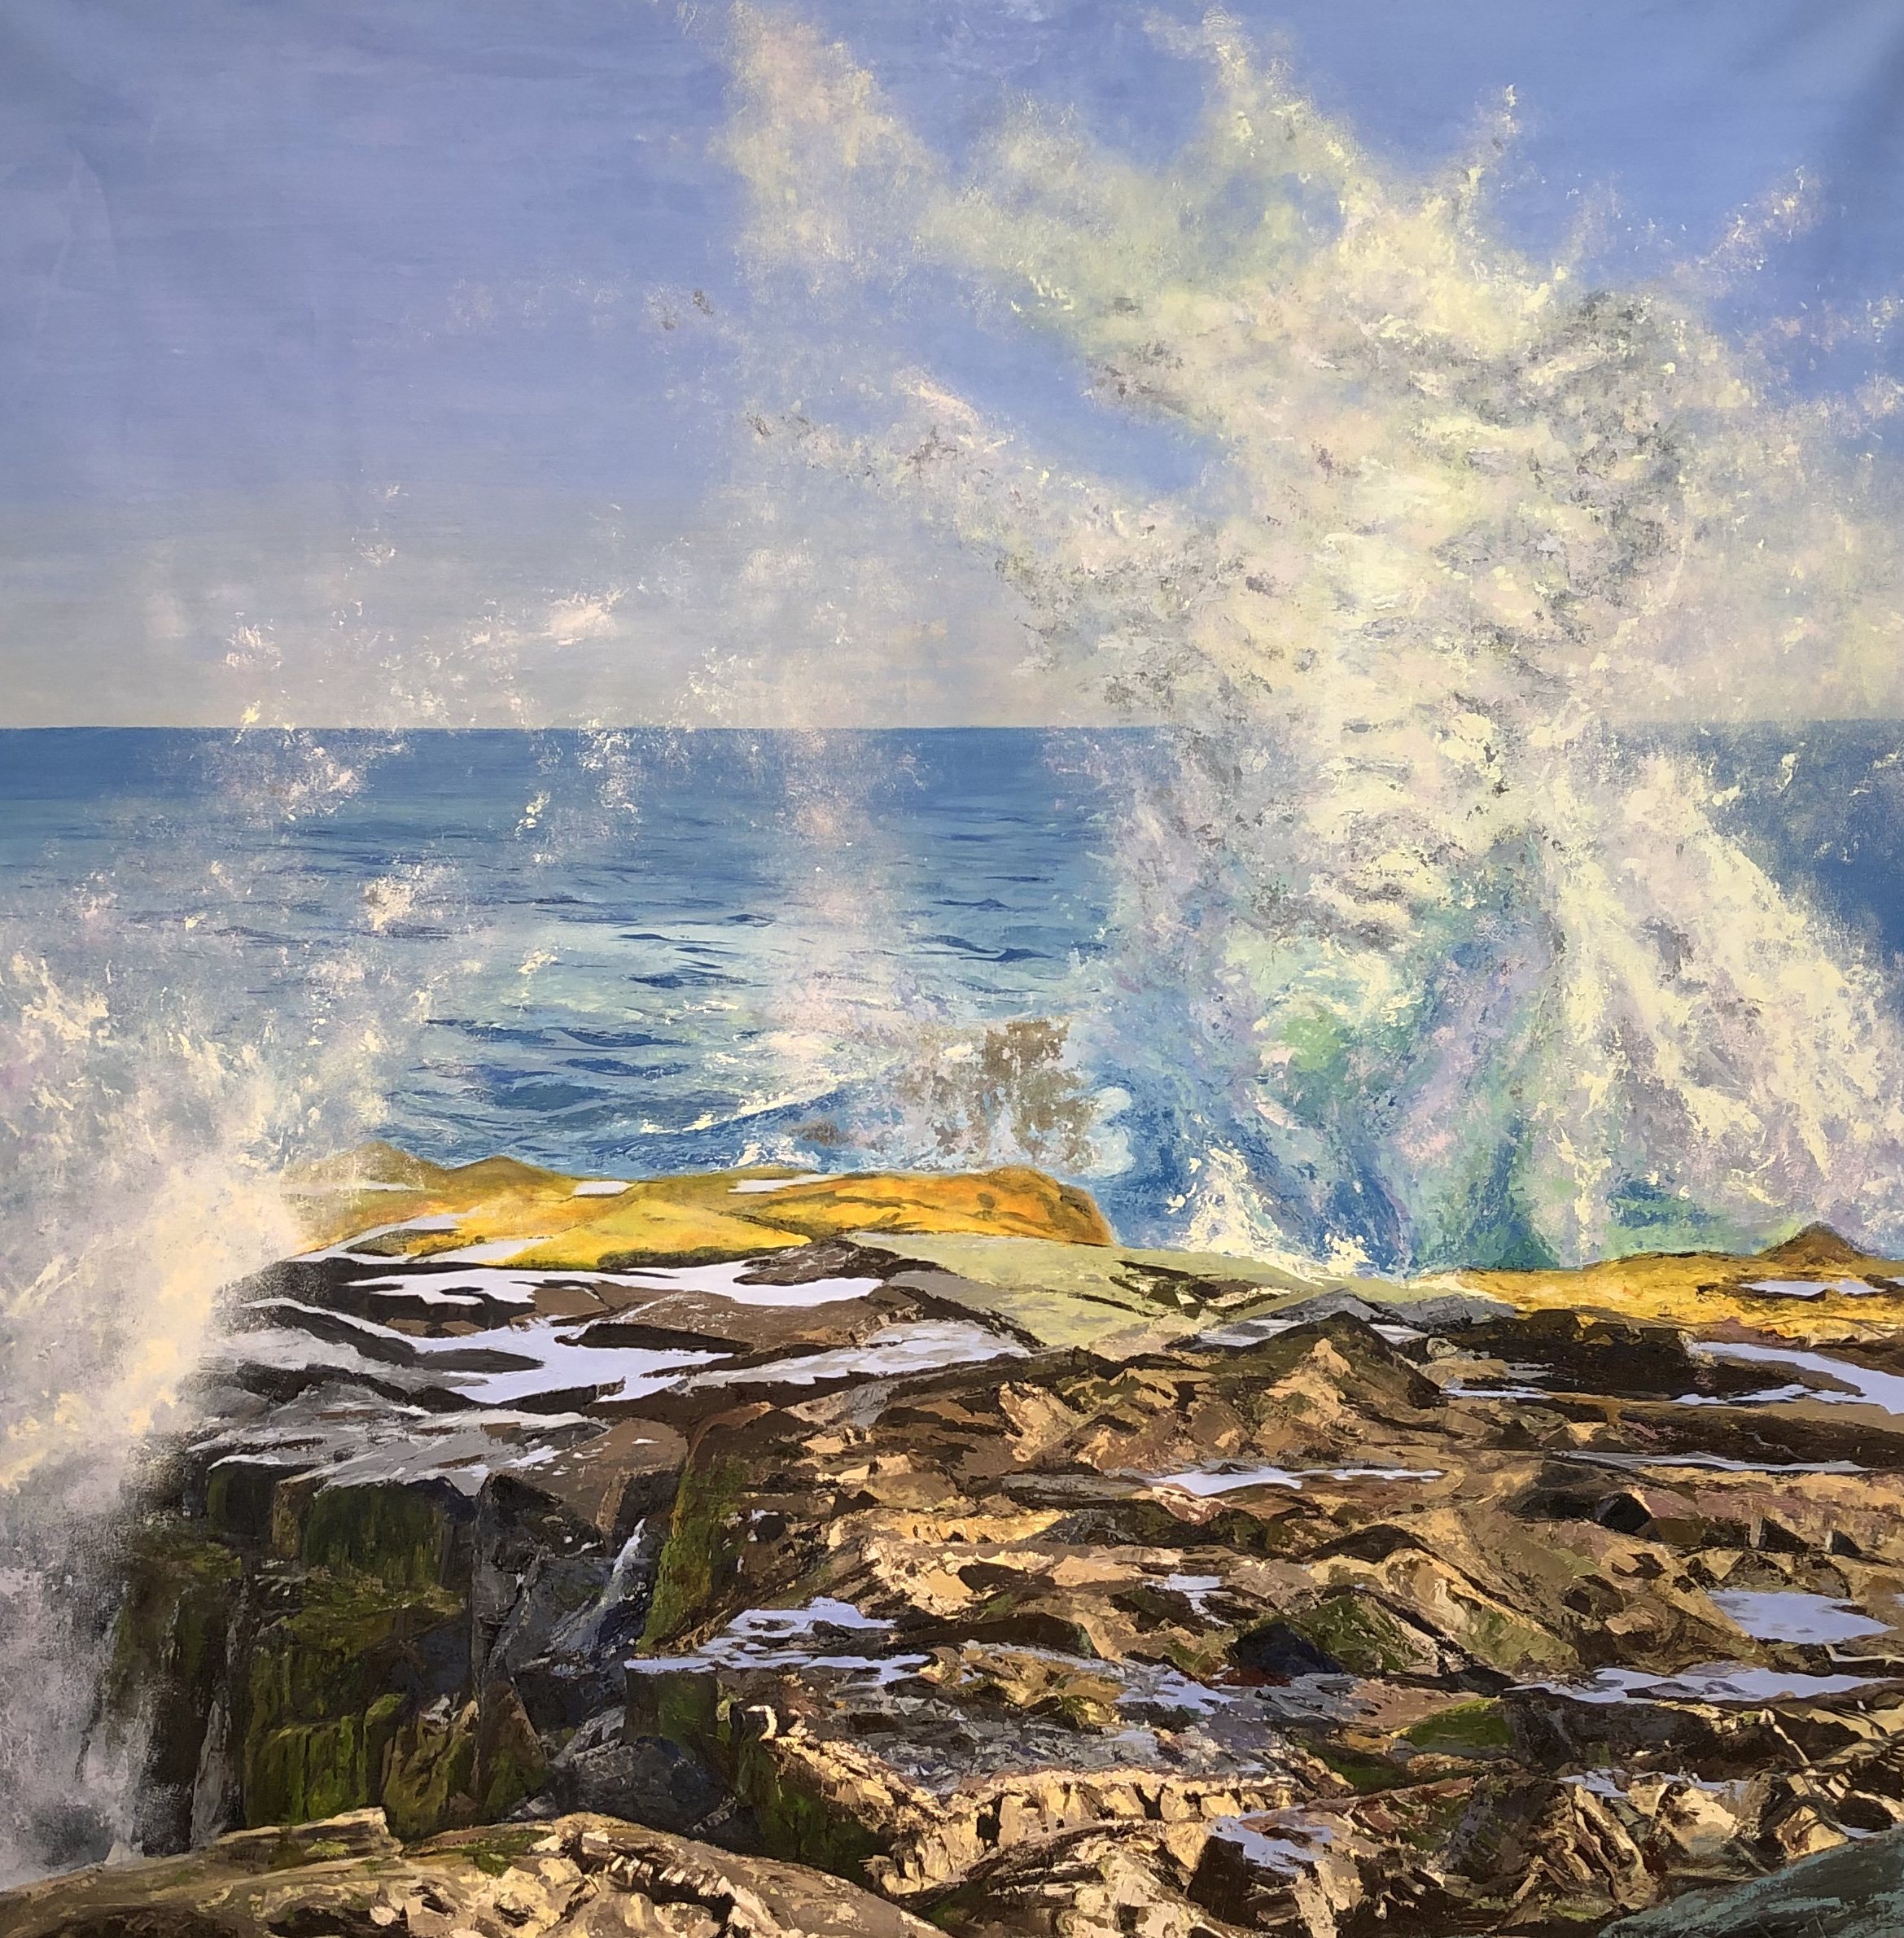 """Waves of Schoodic"", Kathy Varadi, 2019, Oil on canvas, 52 x 52 inches."